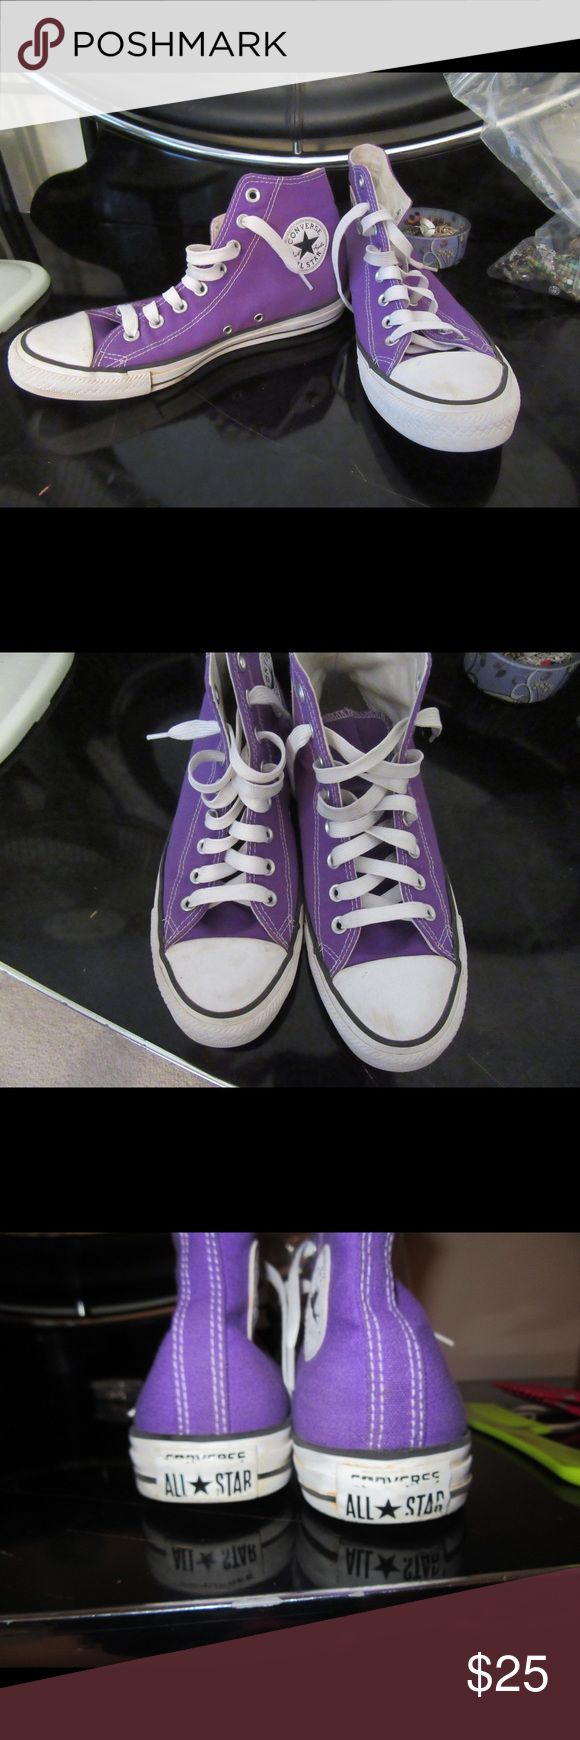 Purple High Top Converse Purple High Top Converse. Women's size 9. THE LACES ARE NOT THE ORIGINAL ONES THAT CANE WITH THE SHOE!!! There is a bit of clay around the racer line but I will to my best to remove it thoroughly. Slight scuffing on the front, barely noticeable :) gently worn Converse Shoes Sneakers